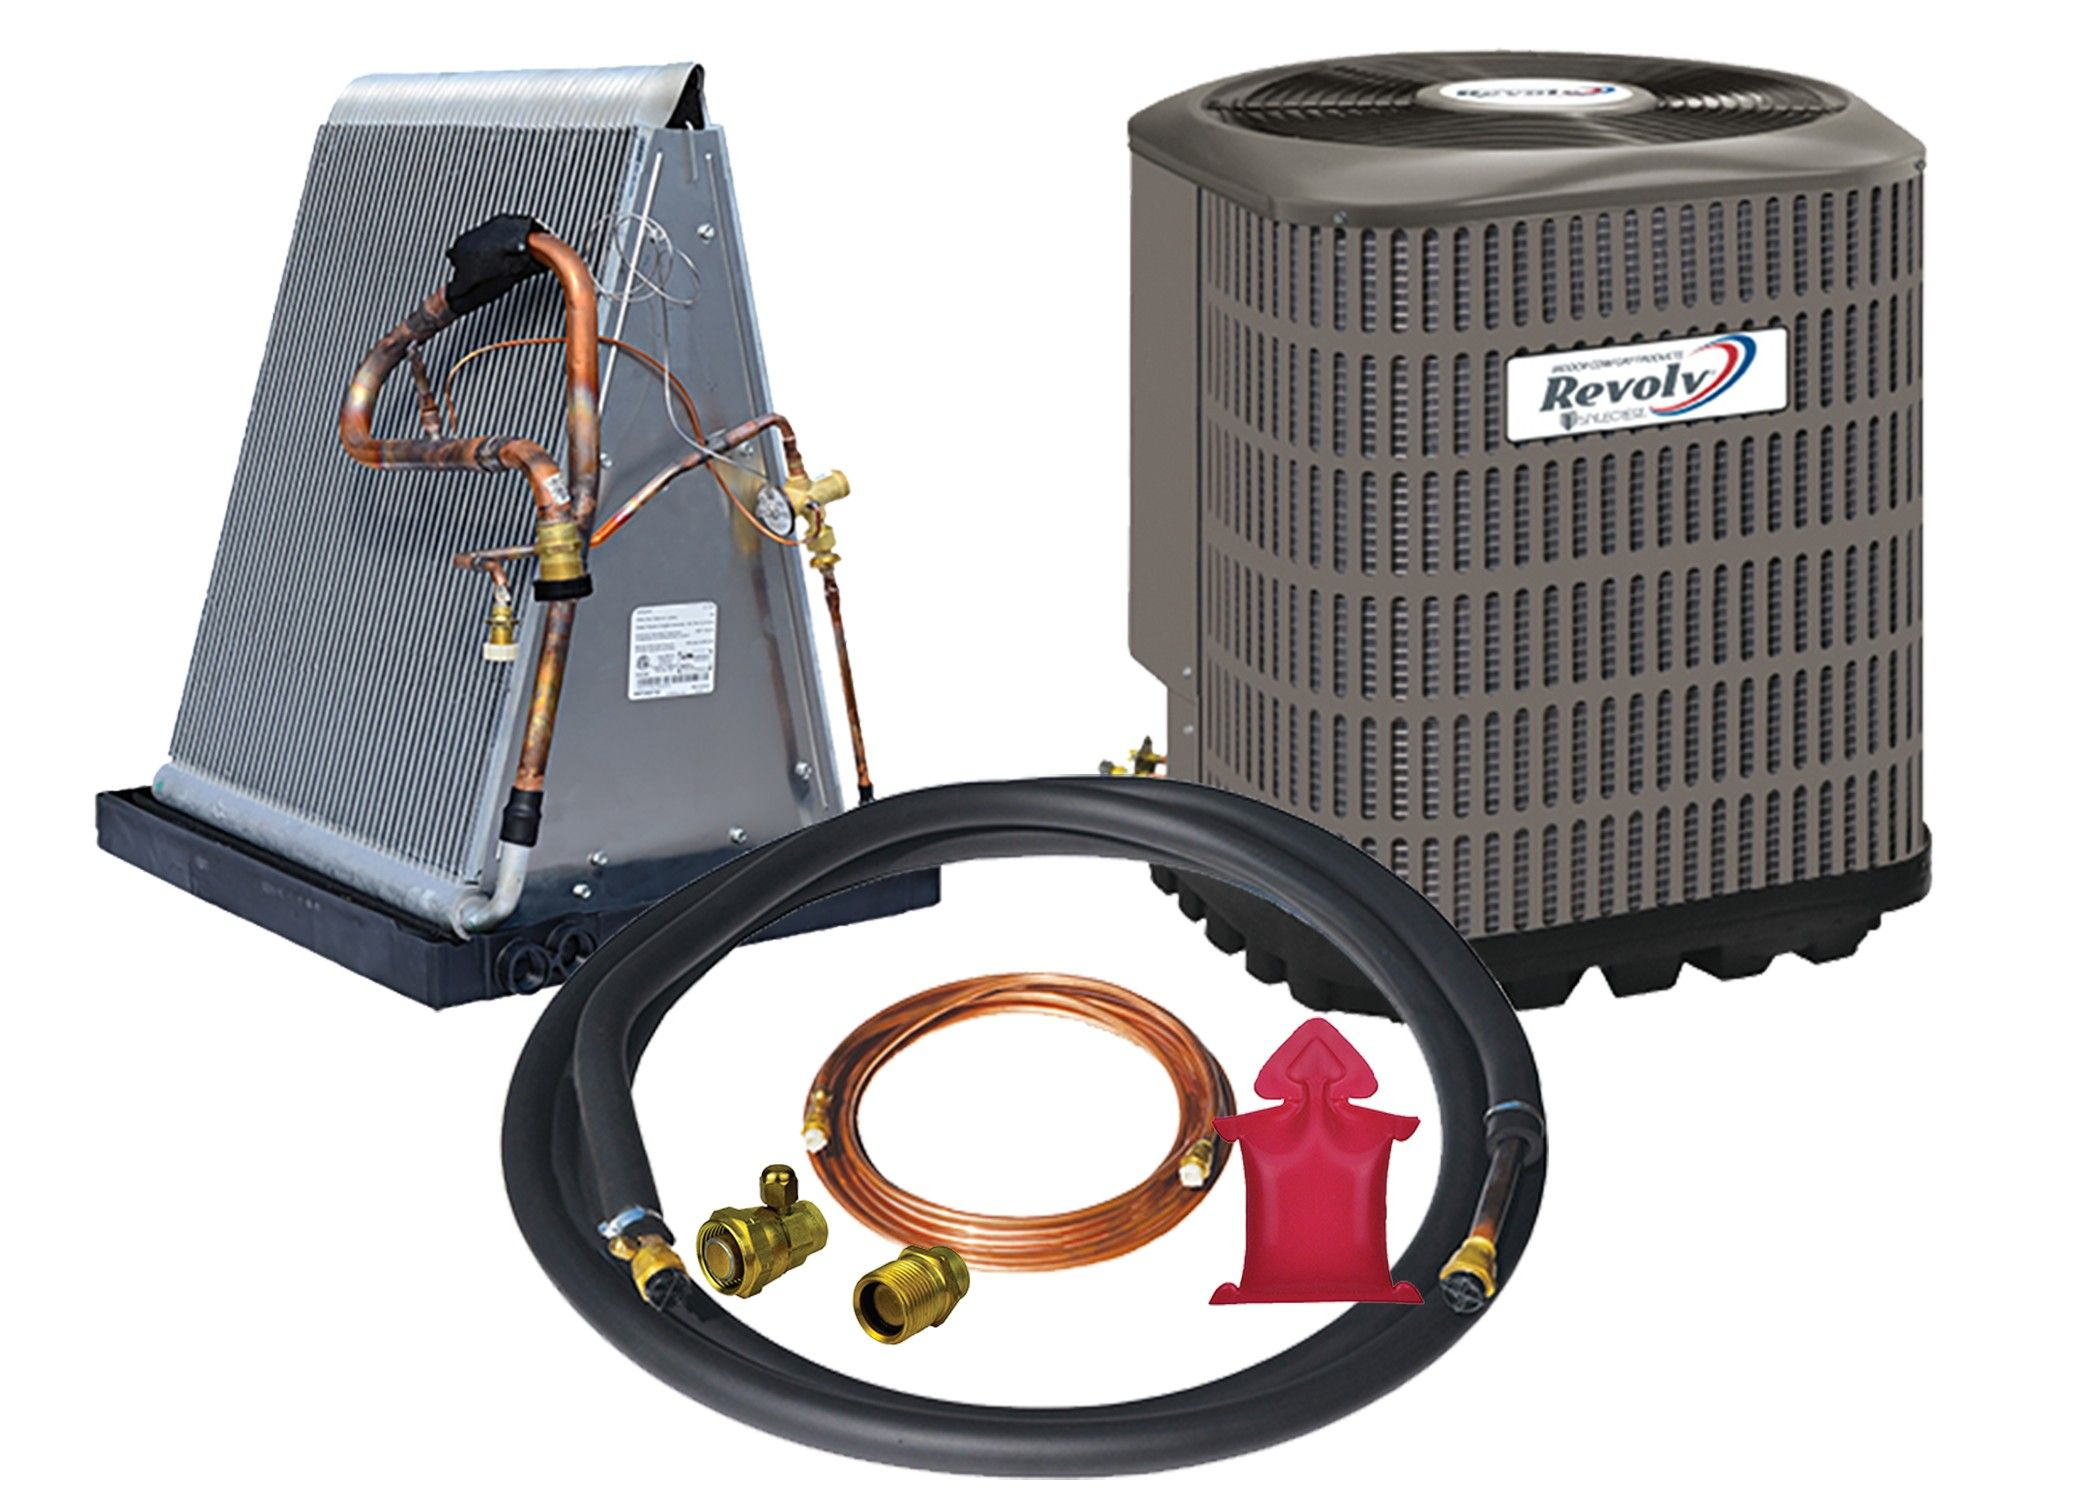 Revolv 3.0 Ton Heat Pump System Add On To Existing Furnace